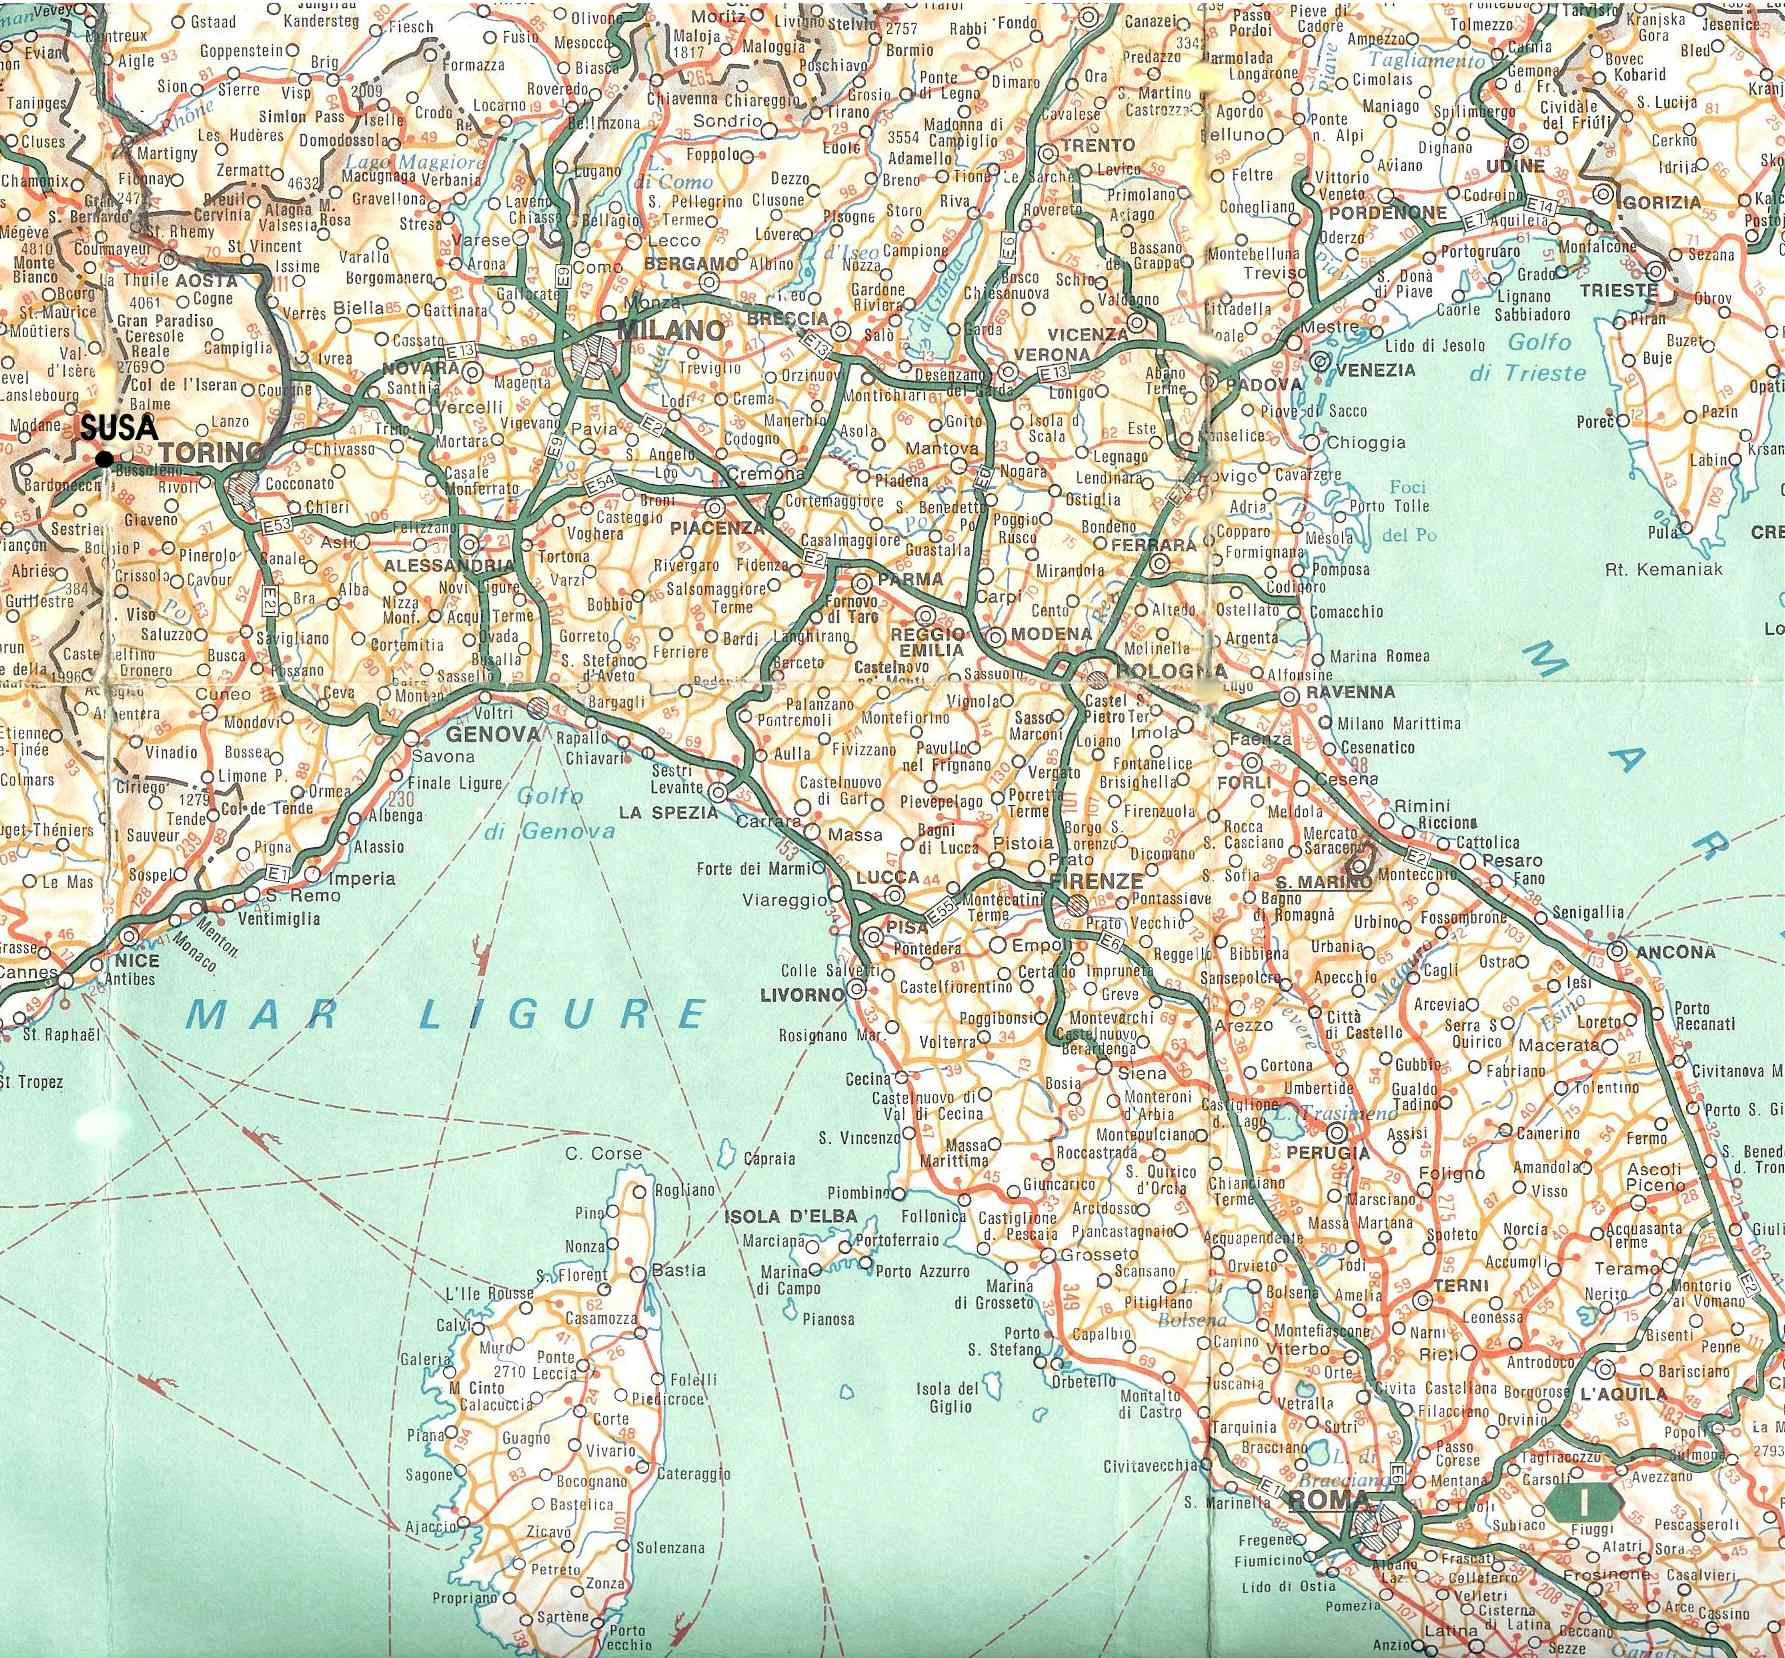 Cartina Nord Italia Geografica.Bed And Breakfast L Archivolto Mappa Stradale